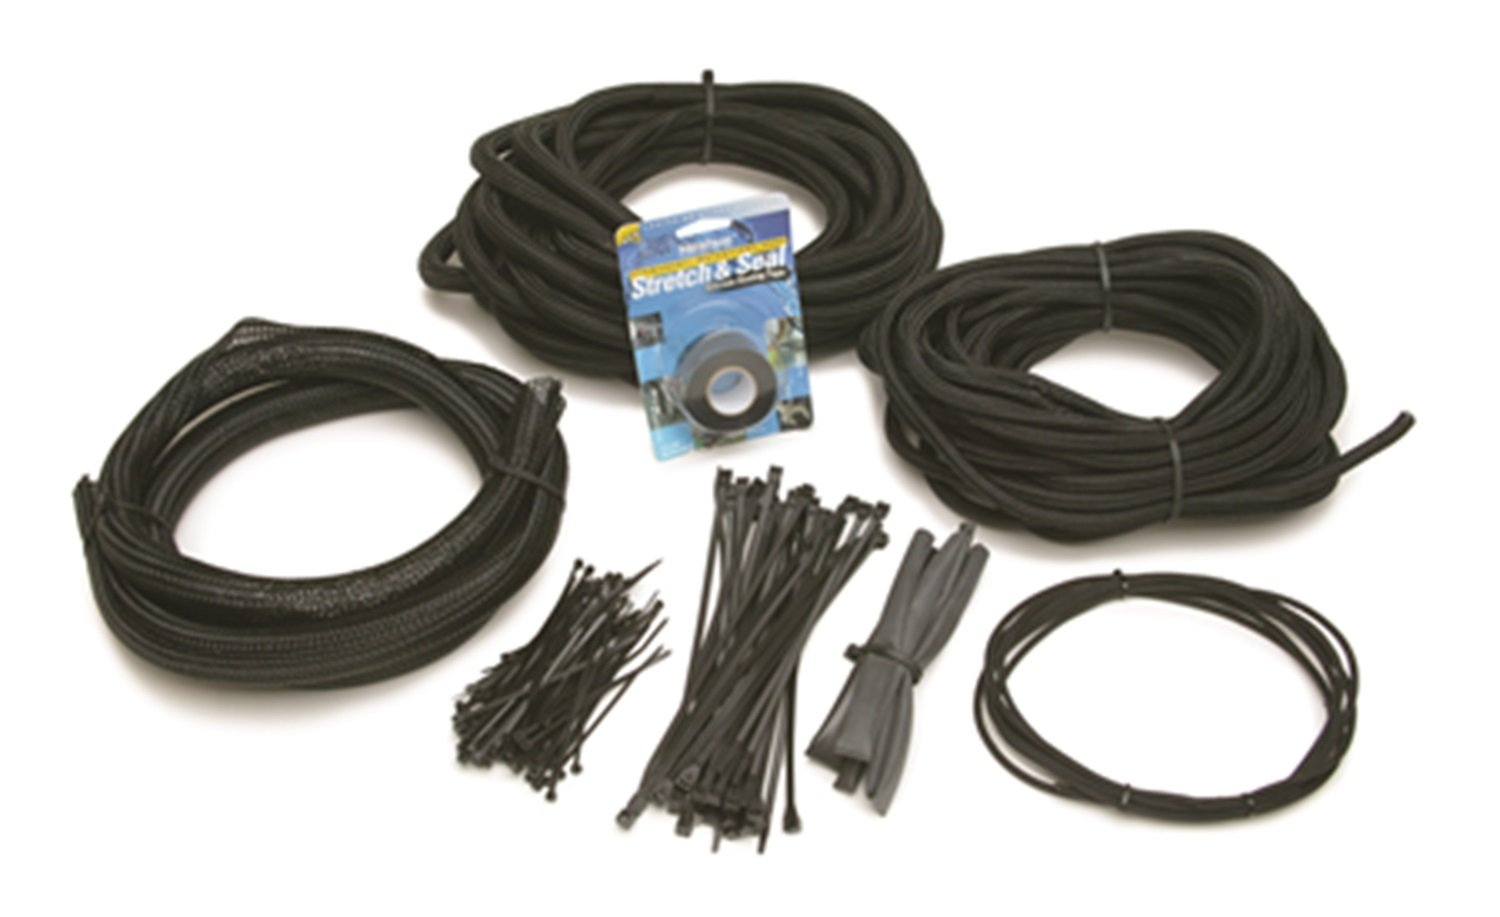 61KfhP ZlhL._SL1500_ amazon com painless wiring 70920 power braid chassis kit automotive engine wiring harness for sale at fashall.co